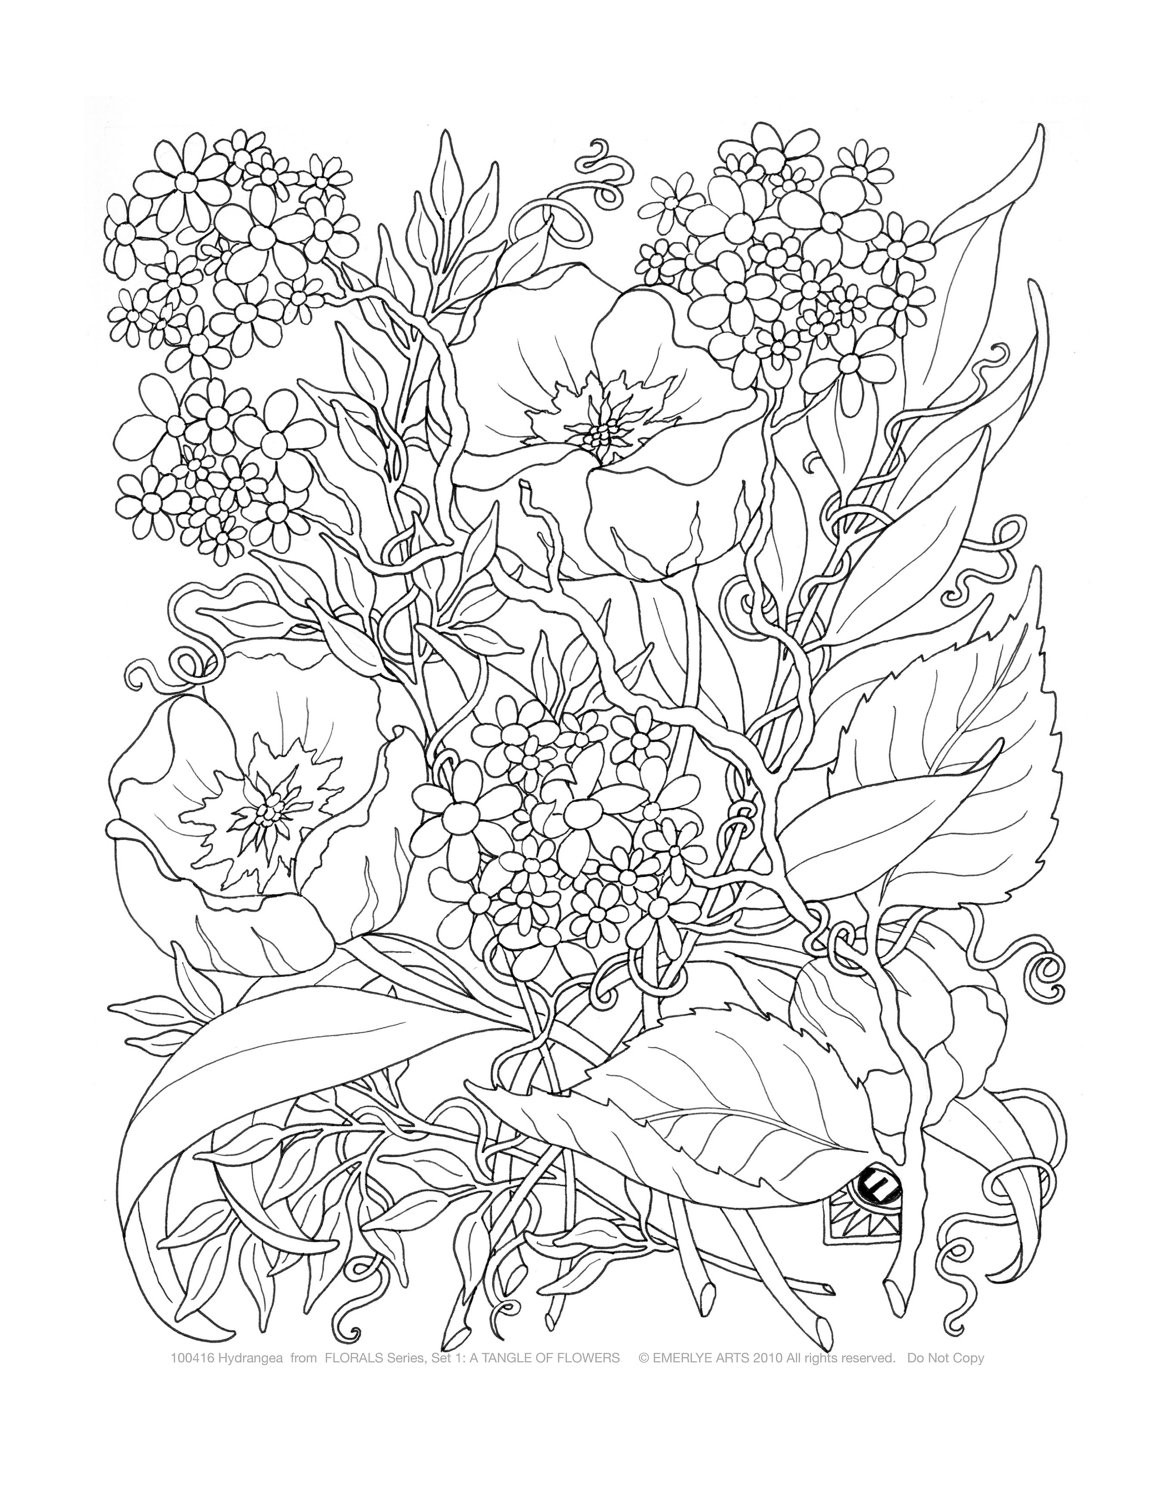 Adult Coloring Book Sets  Adult Coloring A Tangle of Flowers Set of 8 by emerlyearts